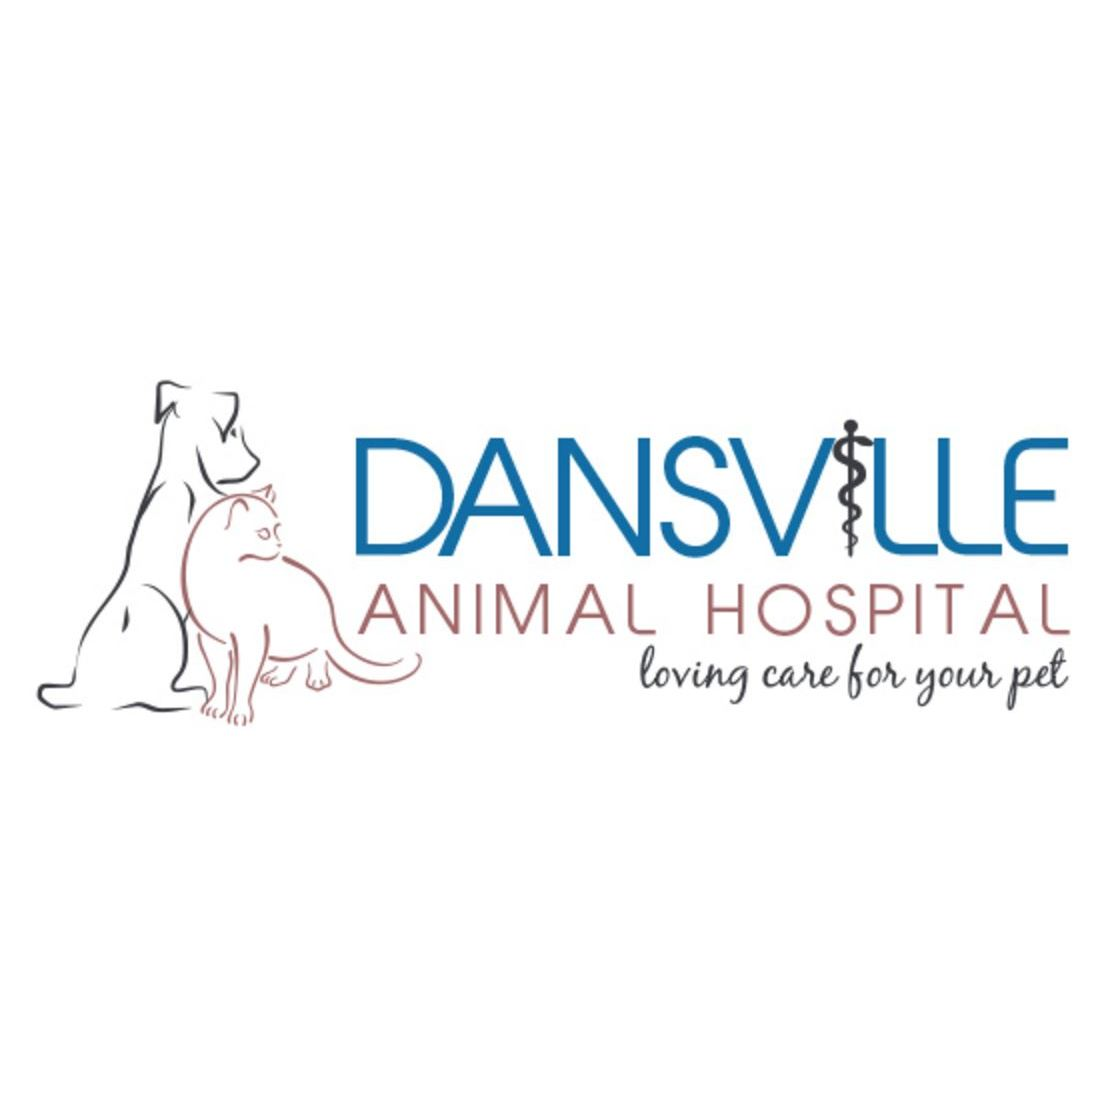 Dansville Animal Hospital - Dansville, NY - Veterinarians